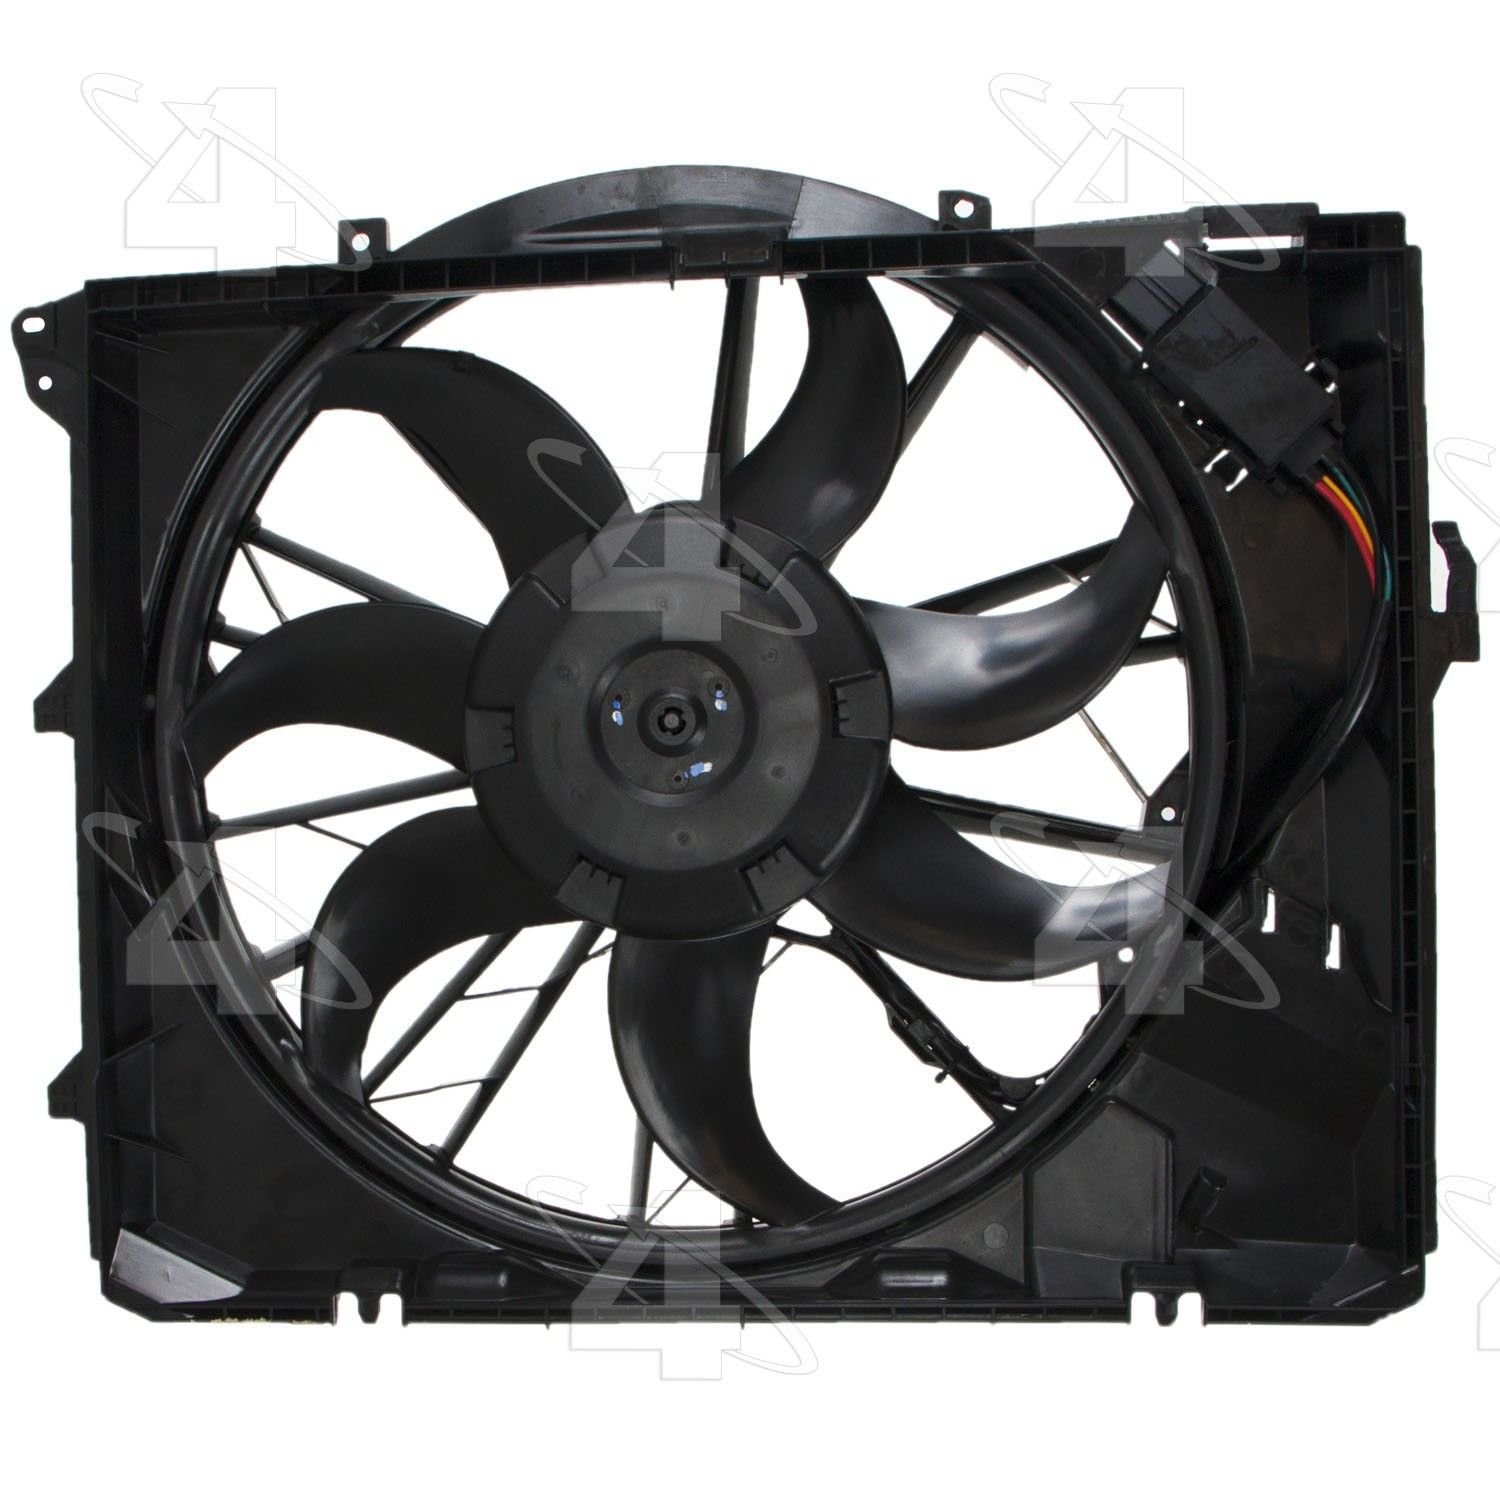 BMW 328i Engine Cooling Fan Assembly Replacement (ACM, APA